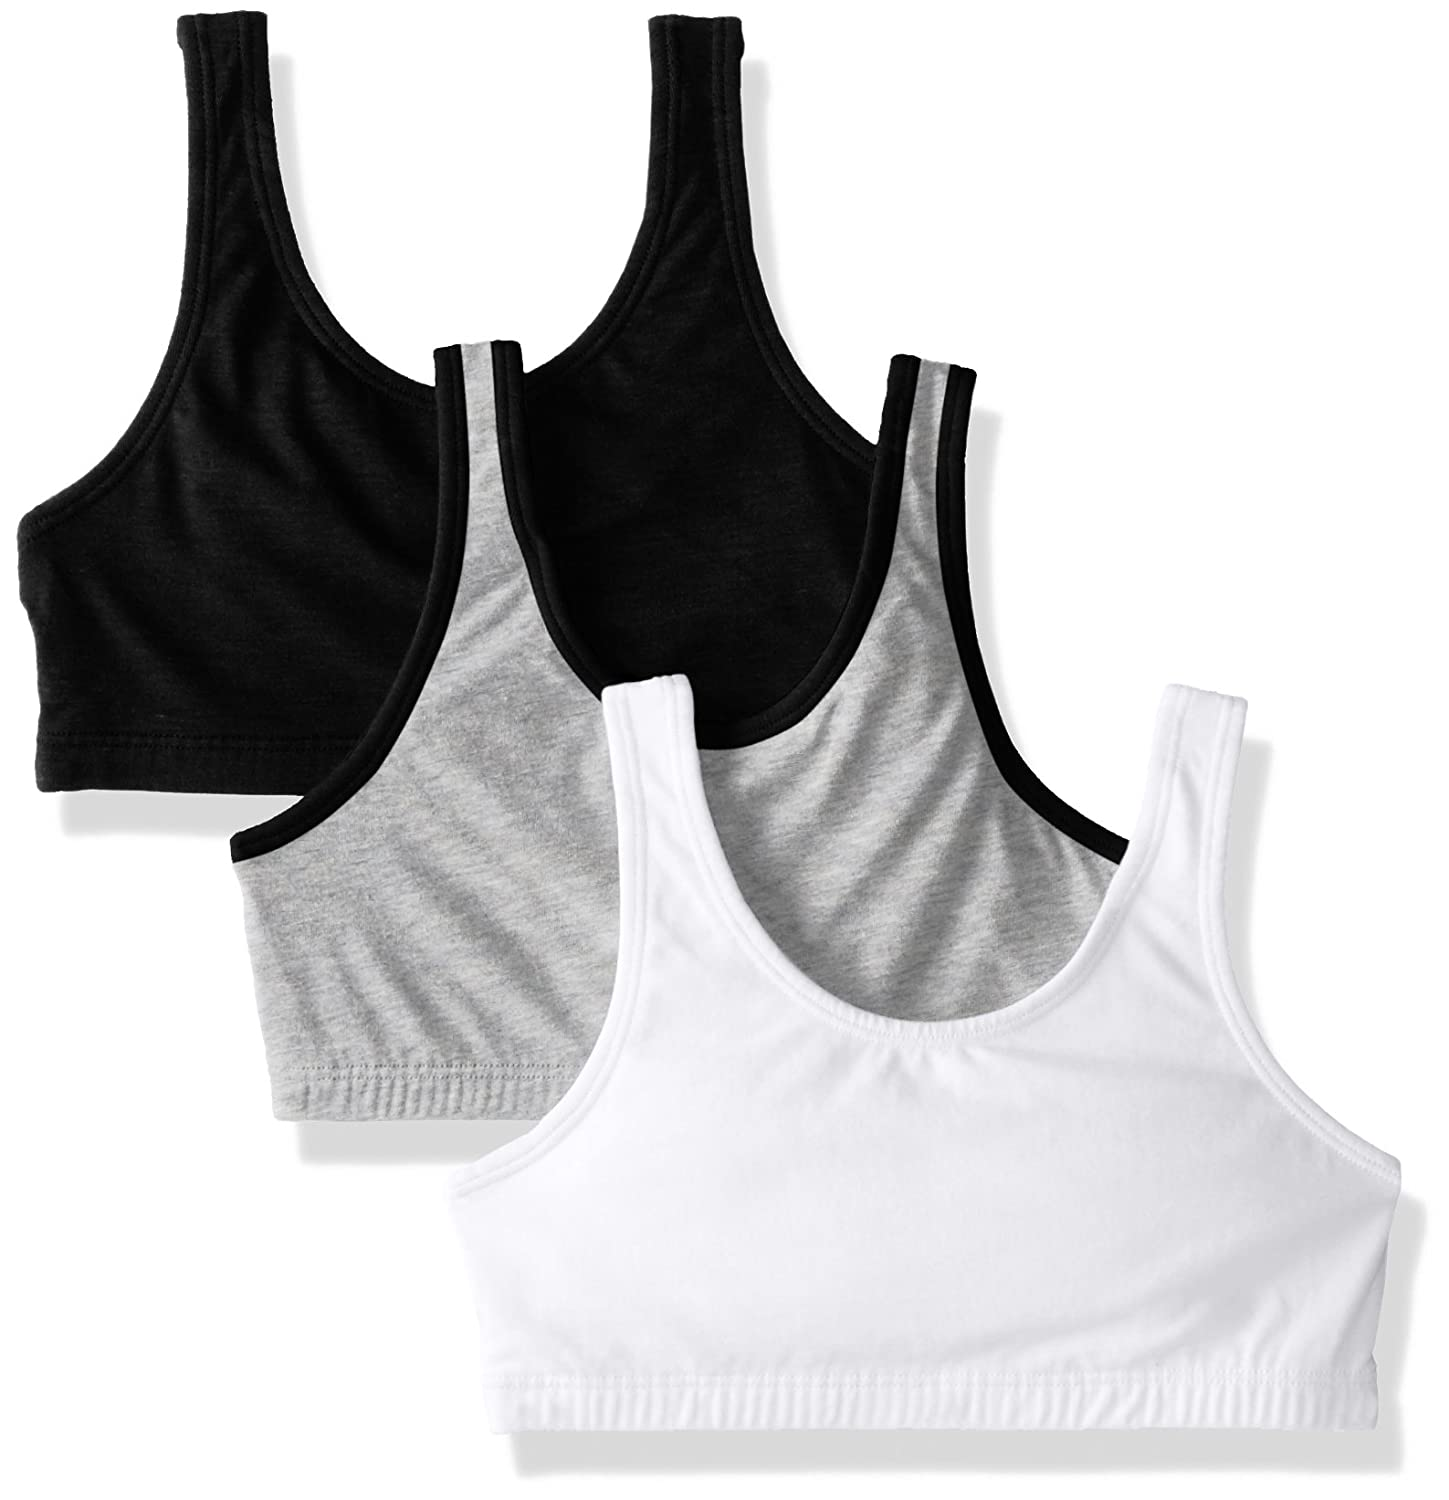 Pack of 3 Fruit of the Loom Girls Cotton Built-up Sport 3 Pack Bra